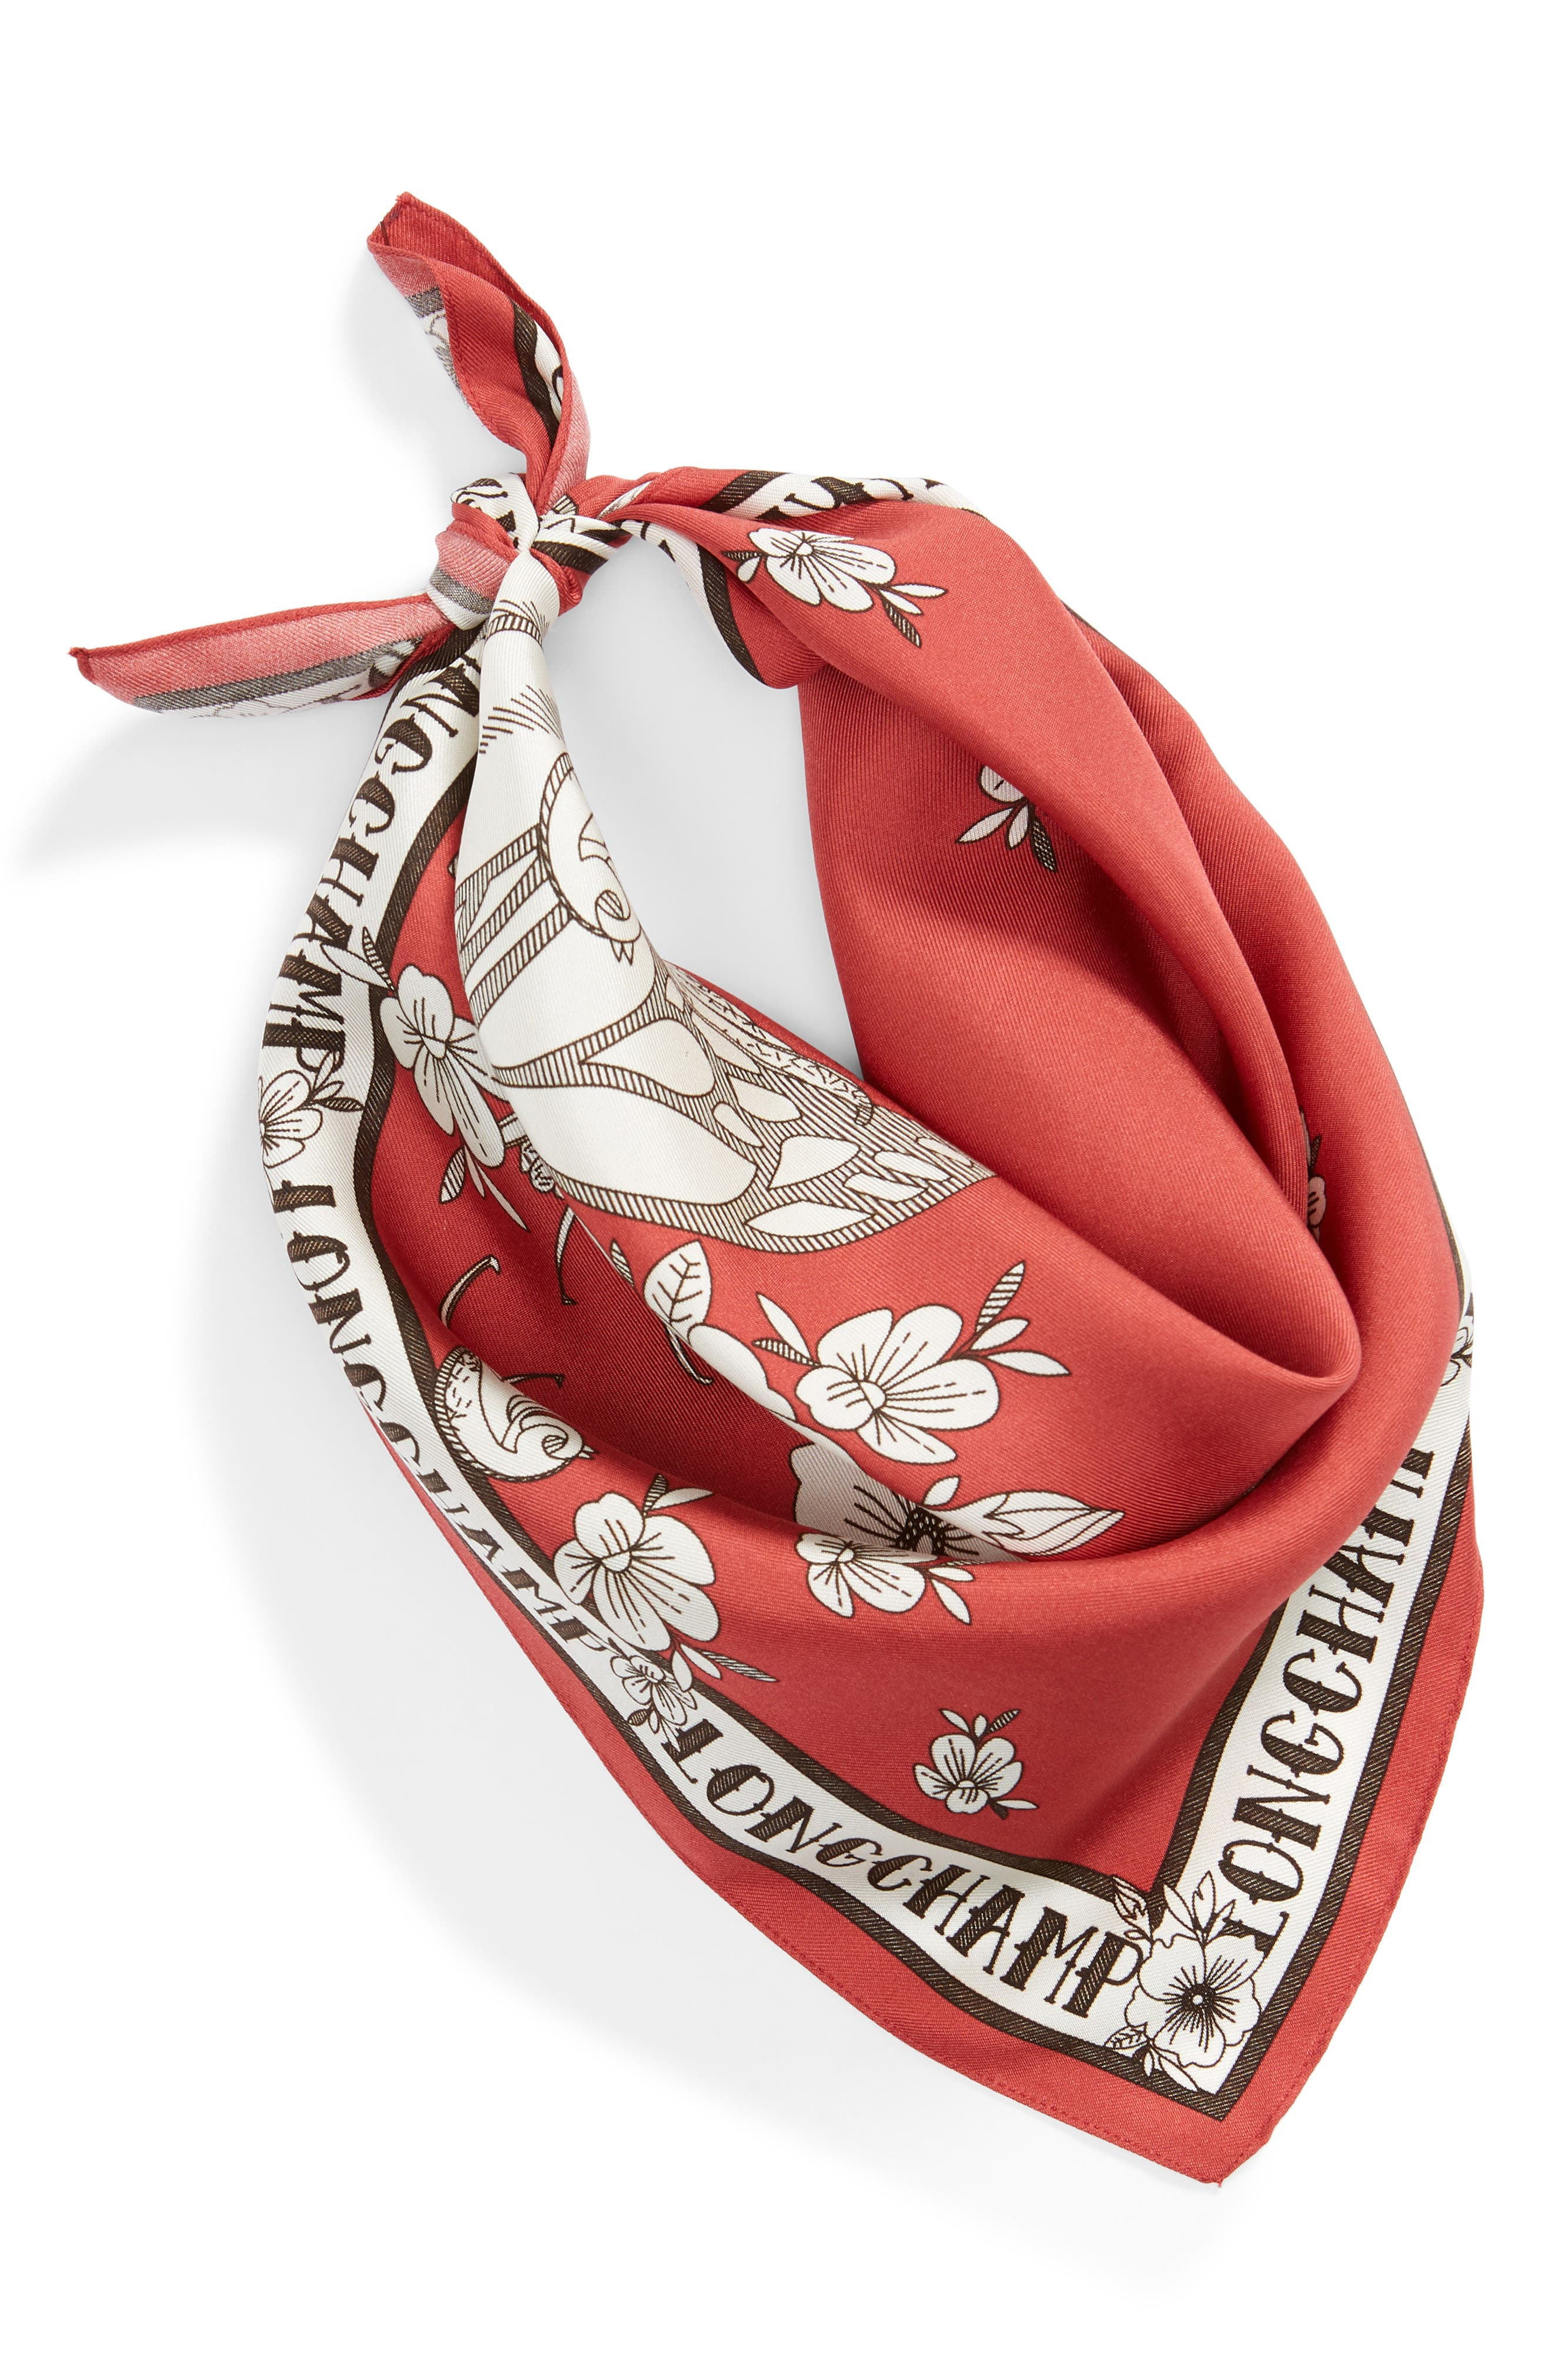 LONGCHAMP, Tattoo Silk Scarf, Alternate thumbnail 3, color, FIG